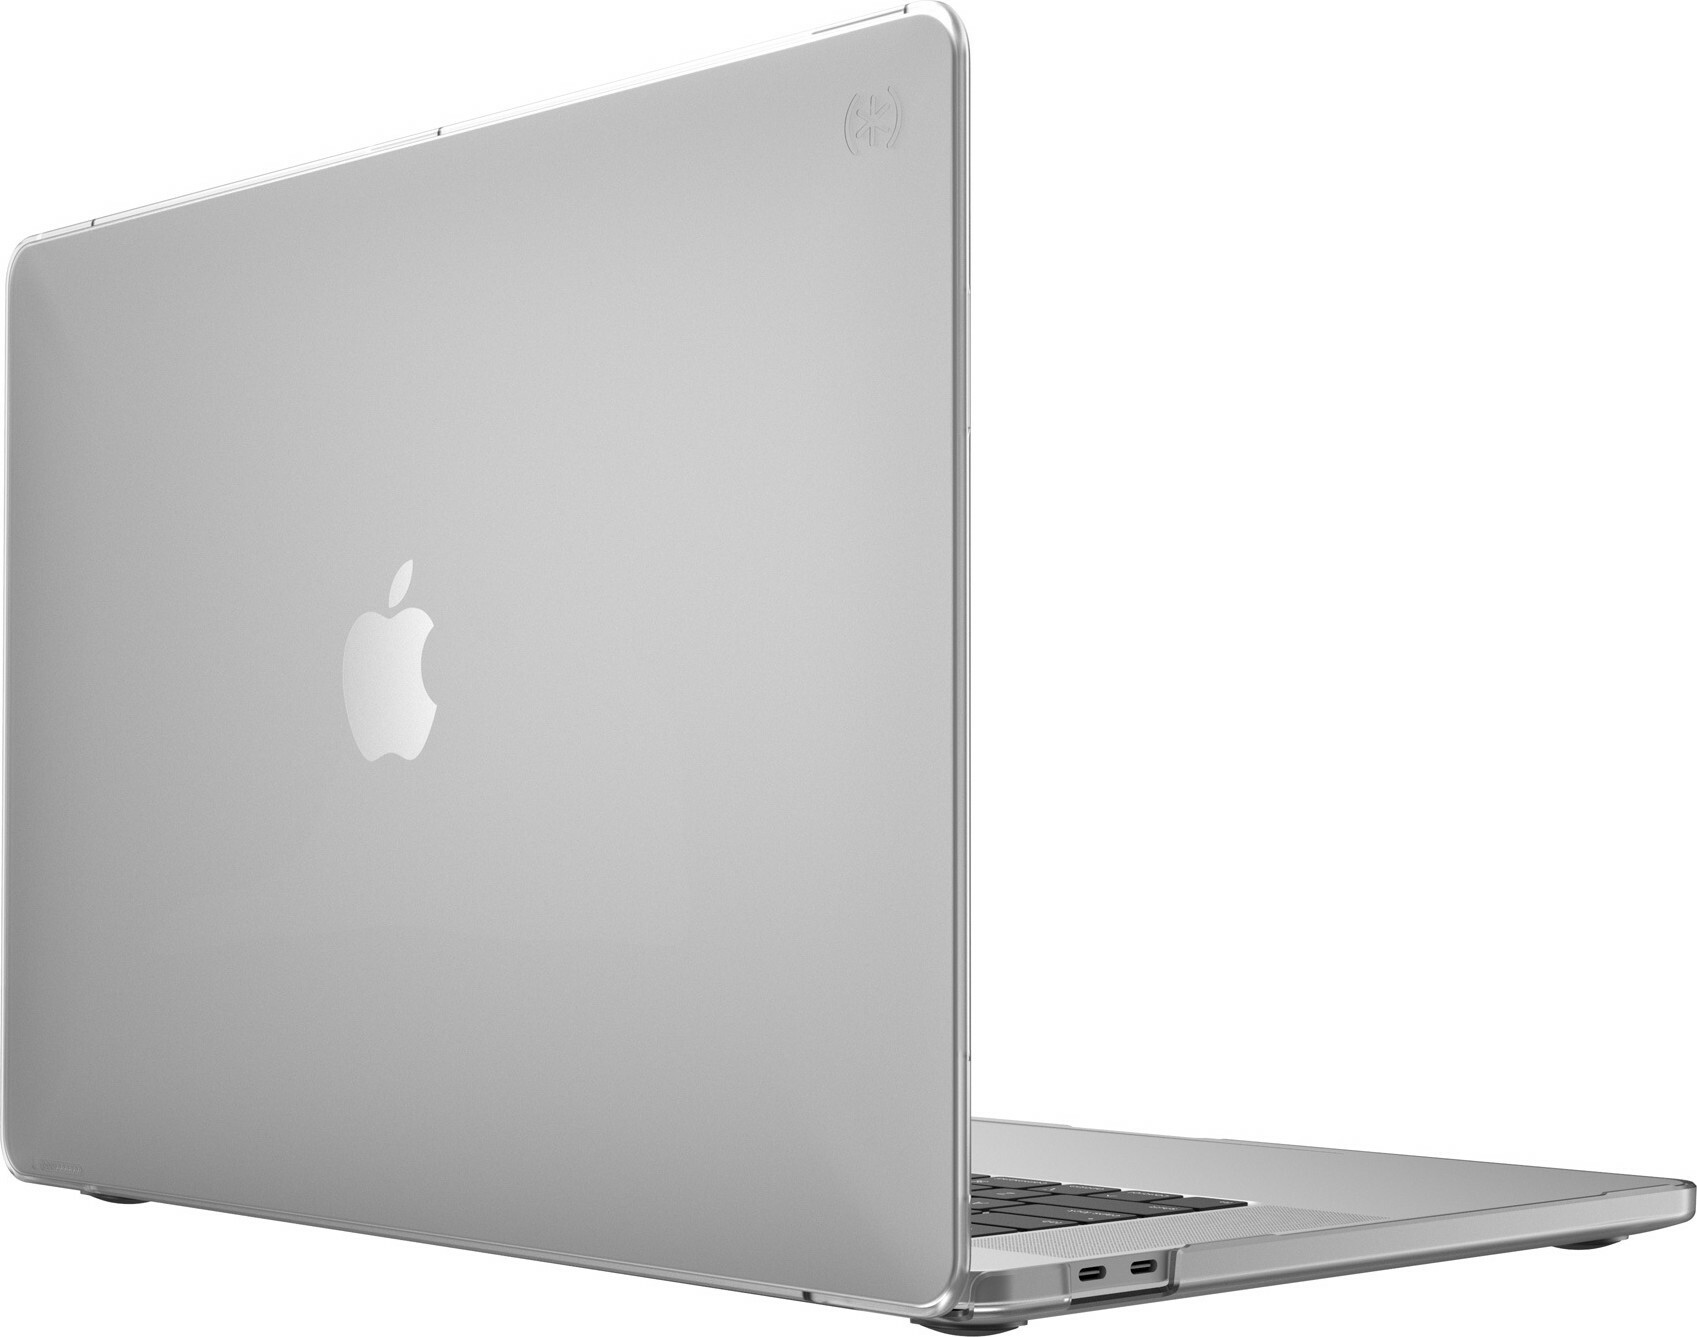 Speck Smartshell Macbook Pro 16 inch (2020) Clear